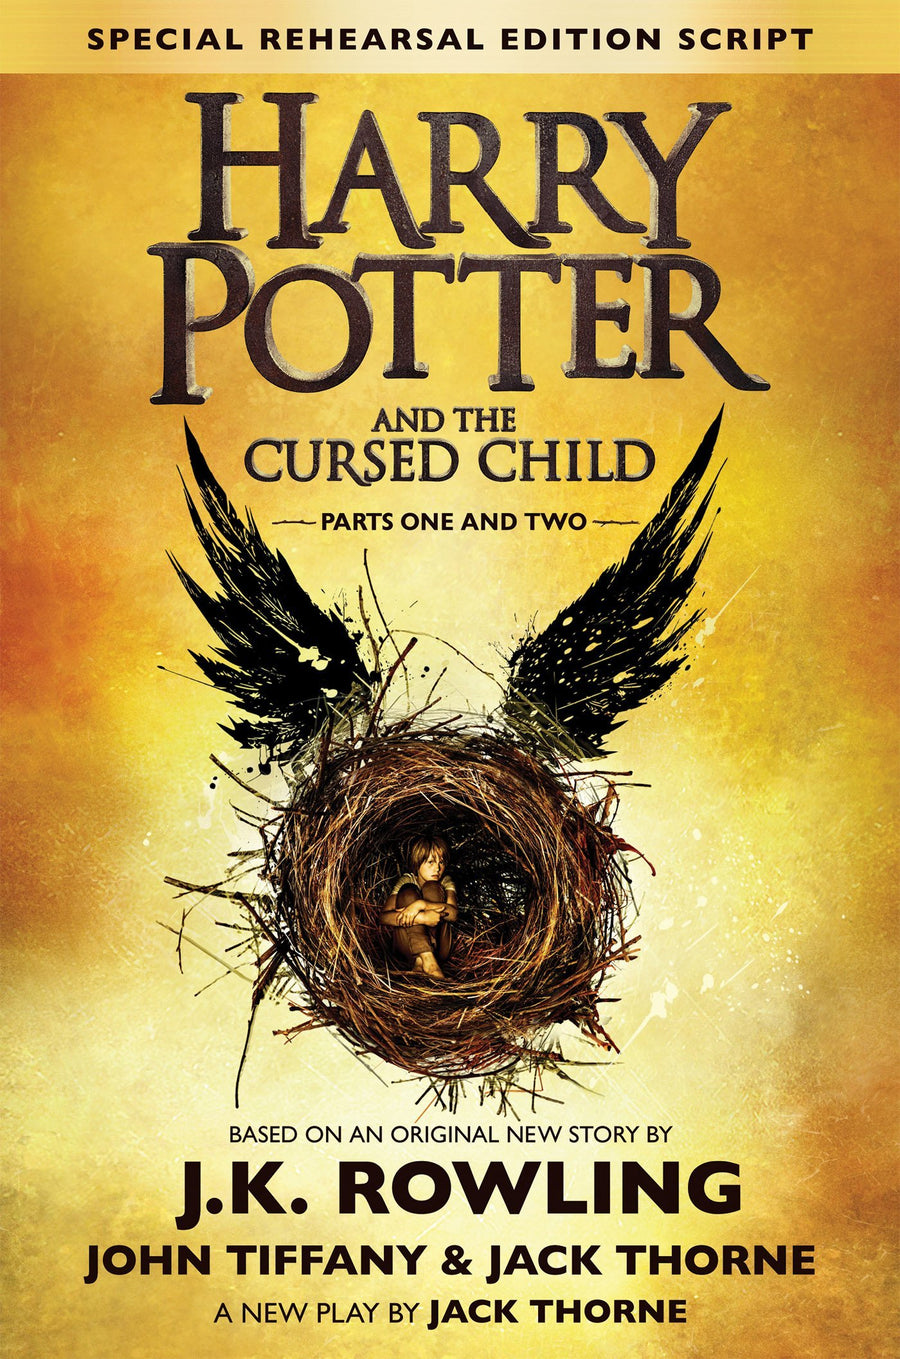 Harry Potter and the Cursed Child - paperback